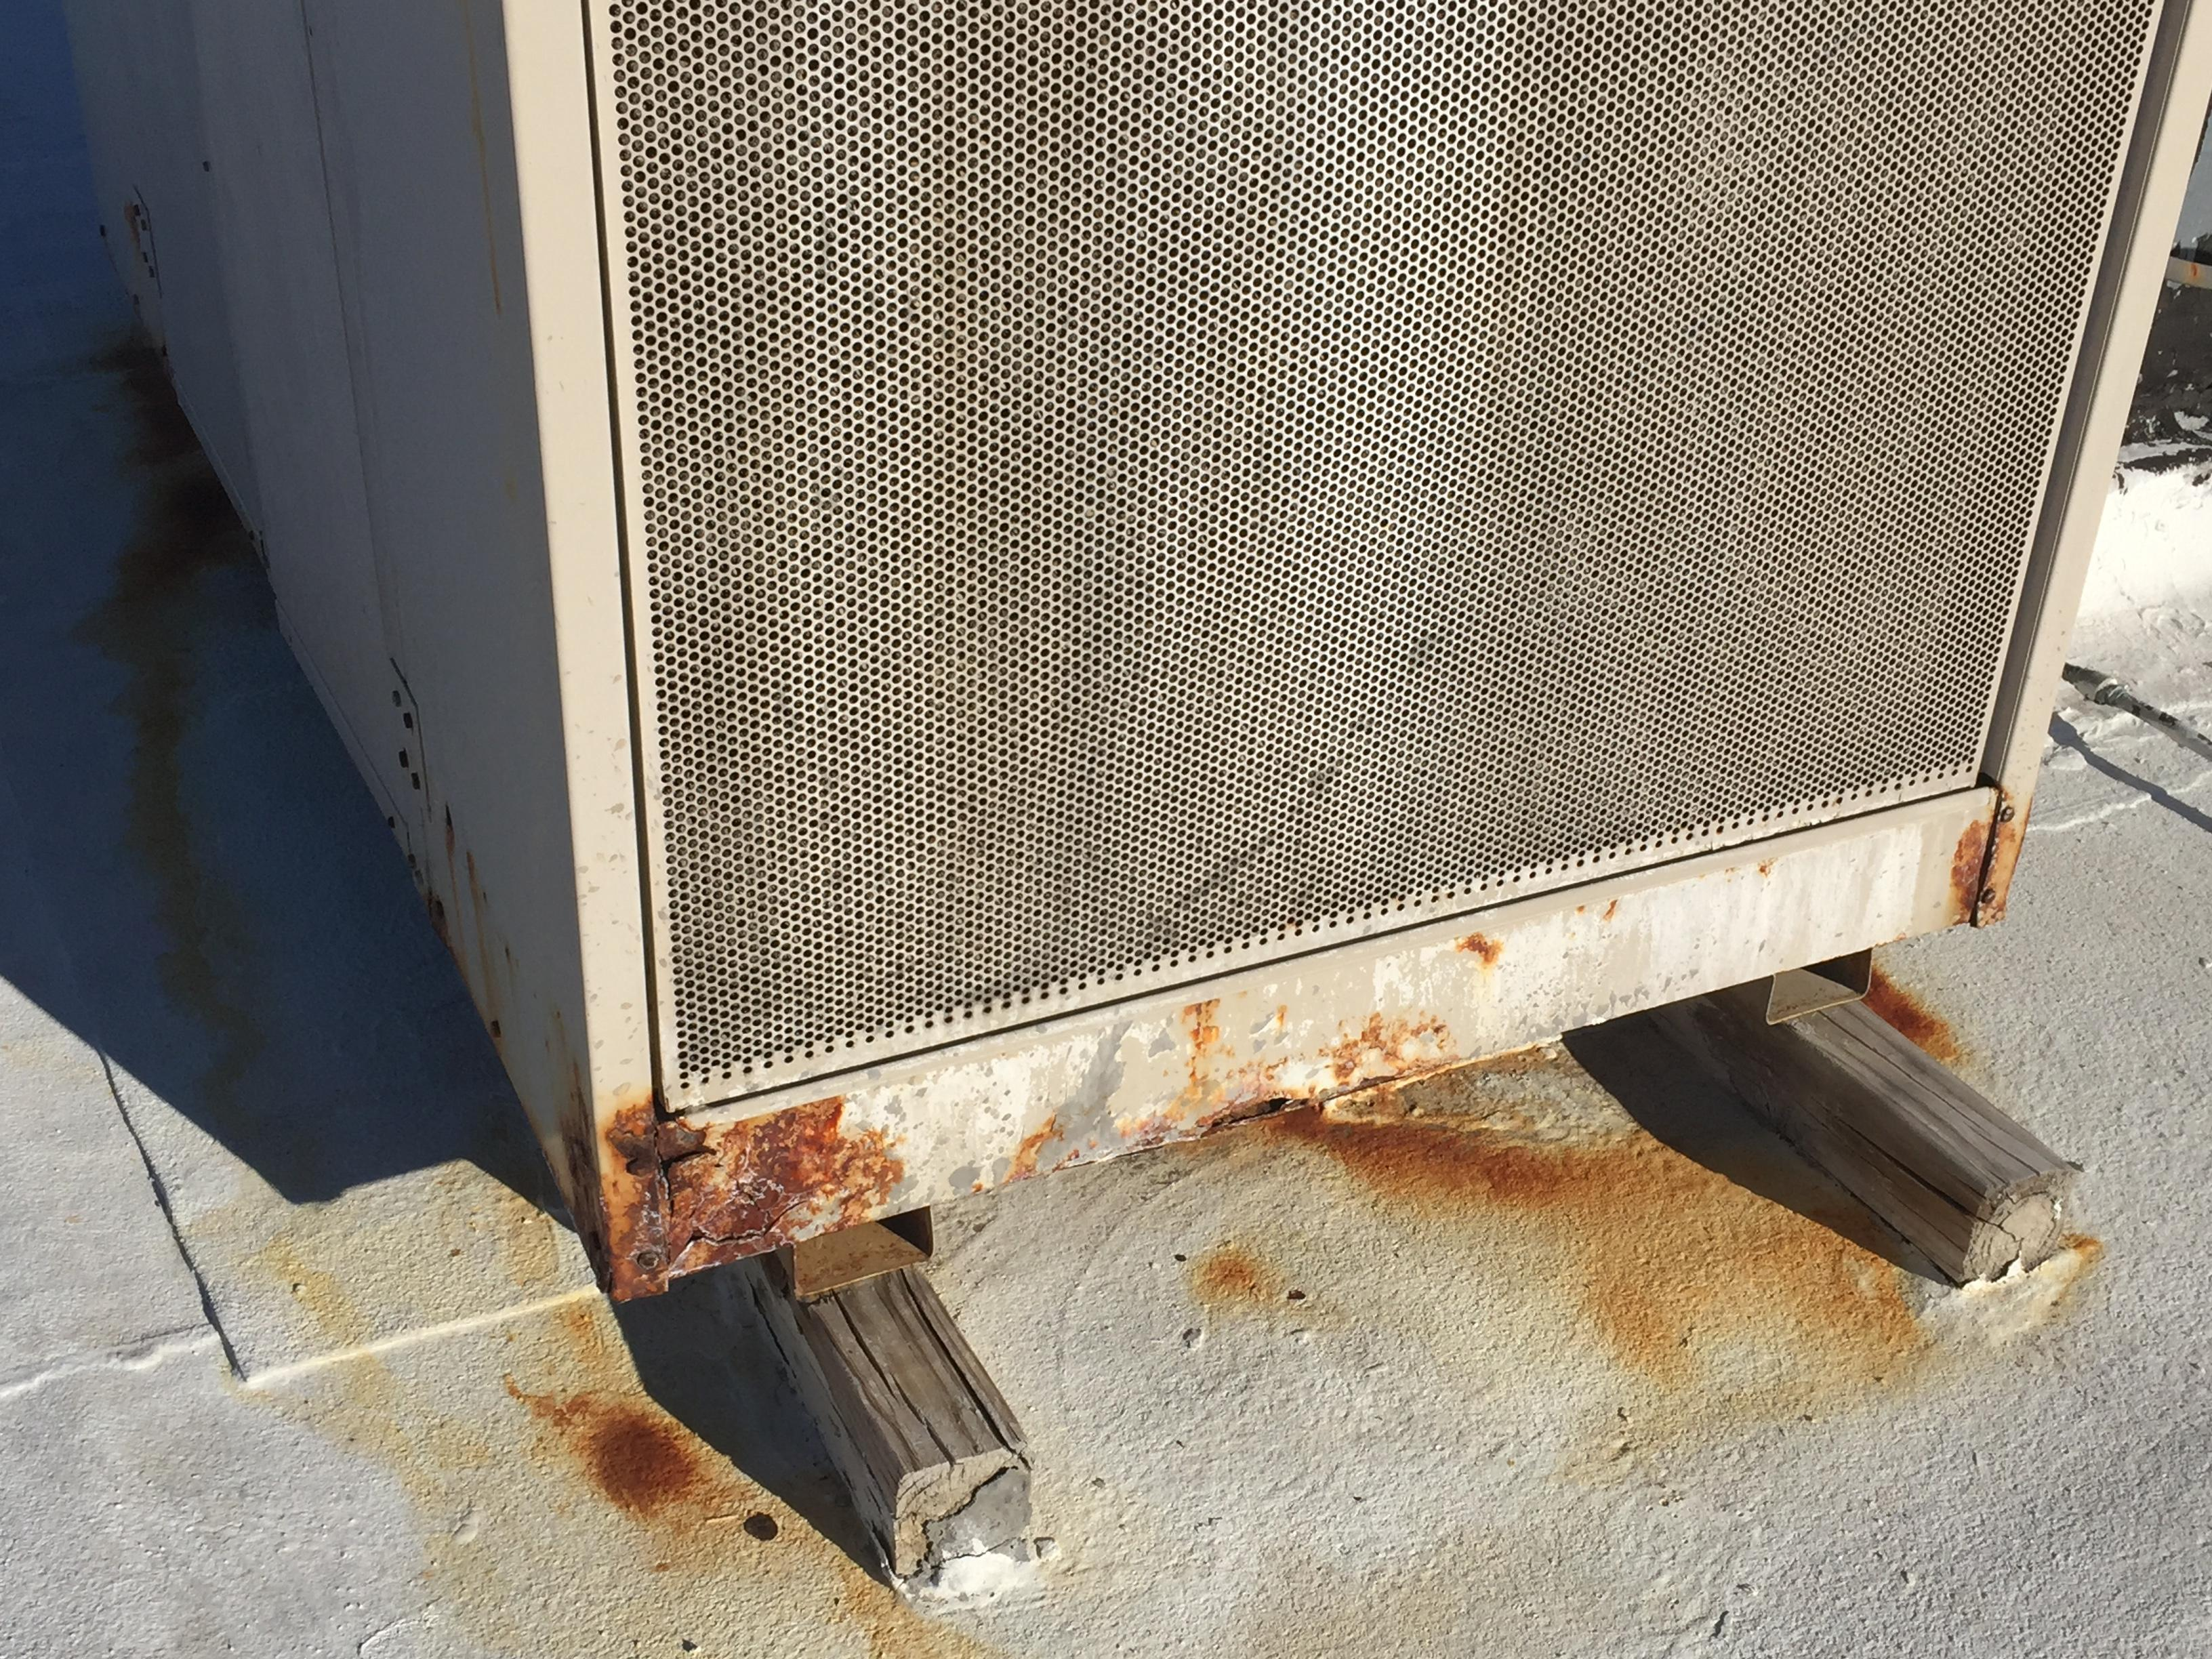 Lack of maintenance on this evaporate cooler